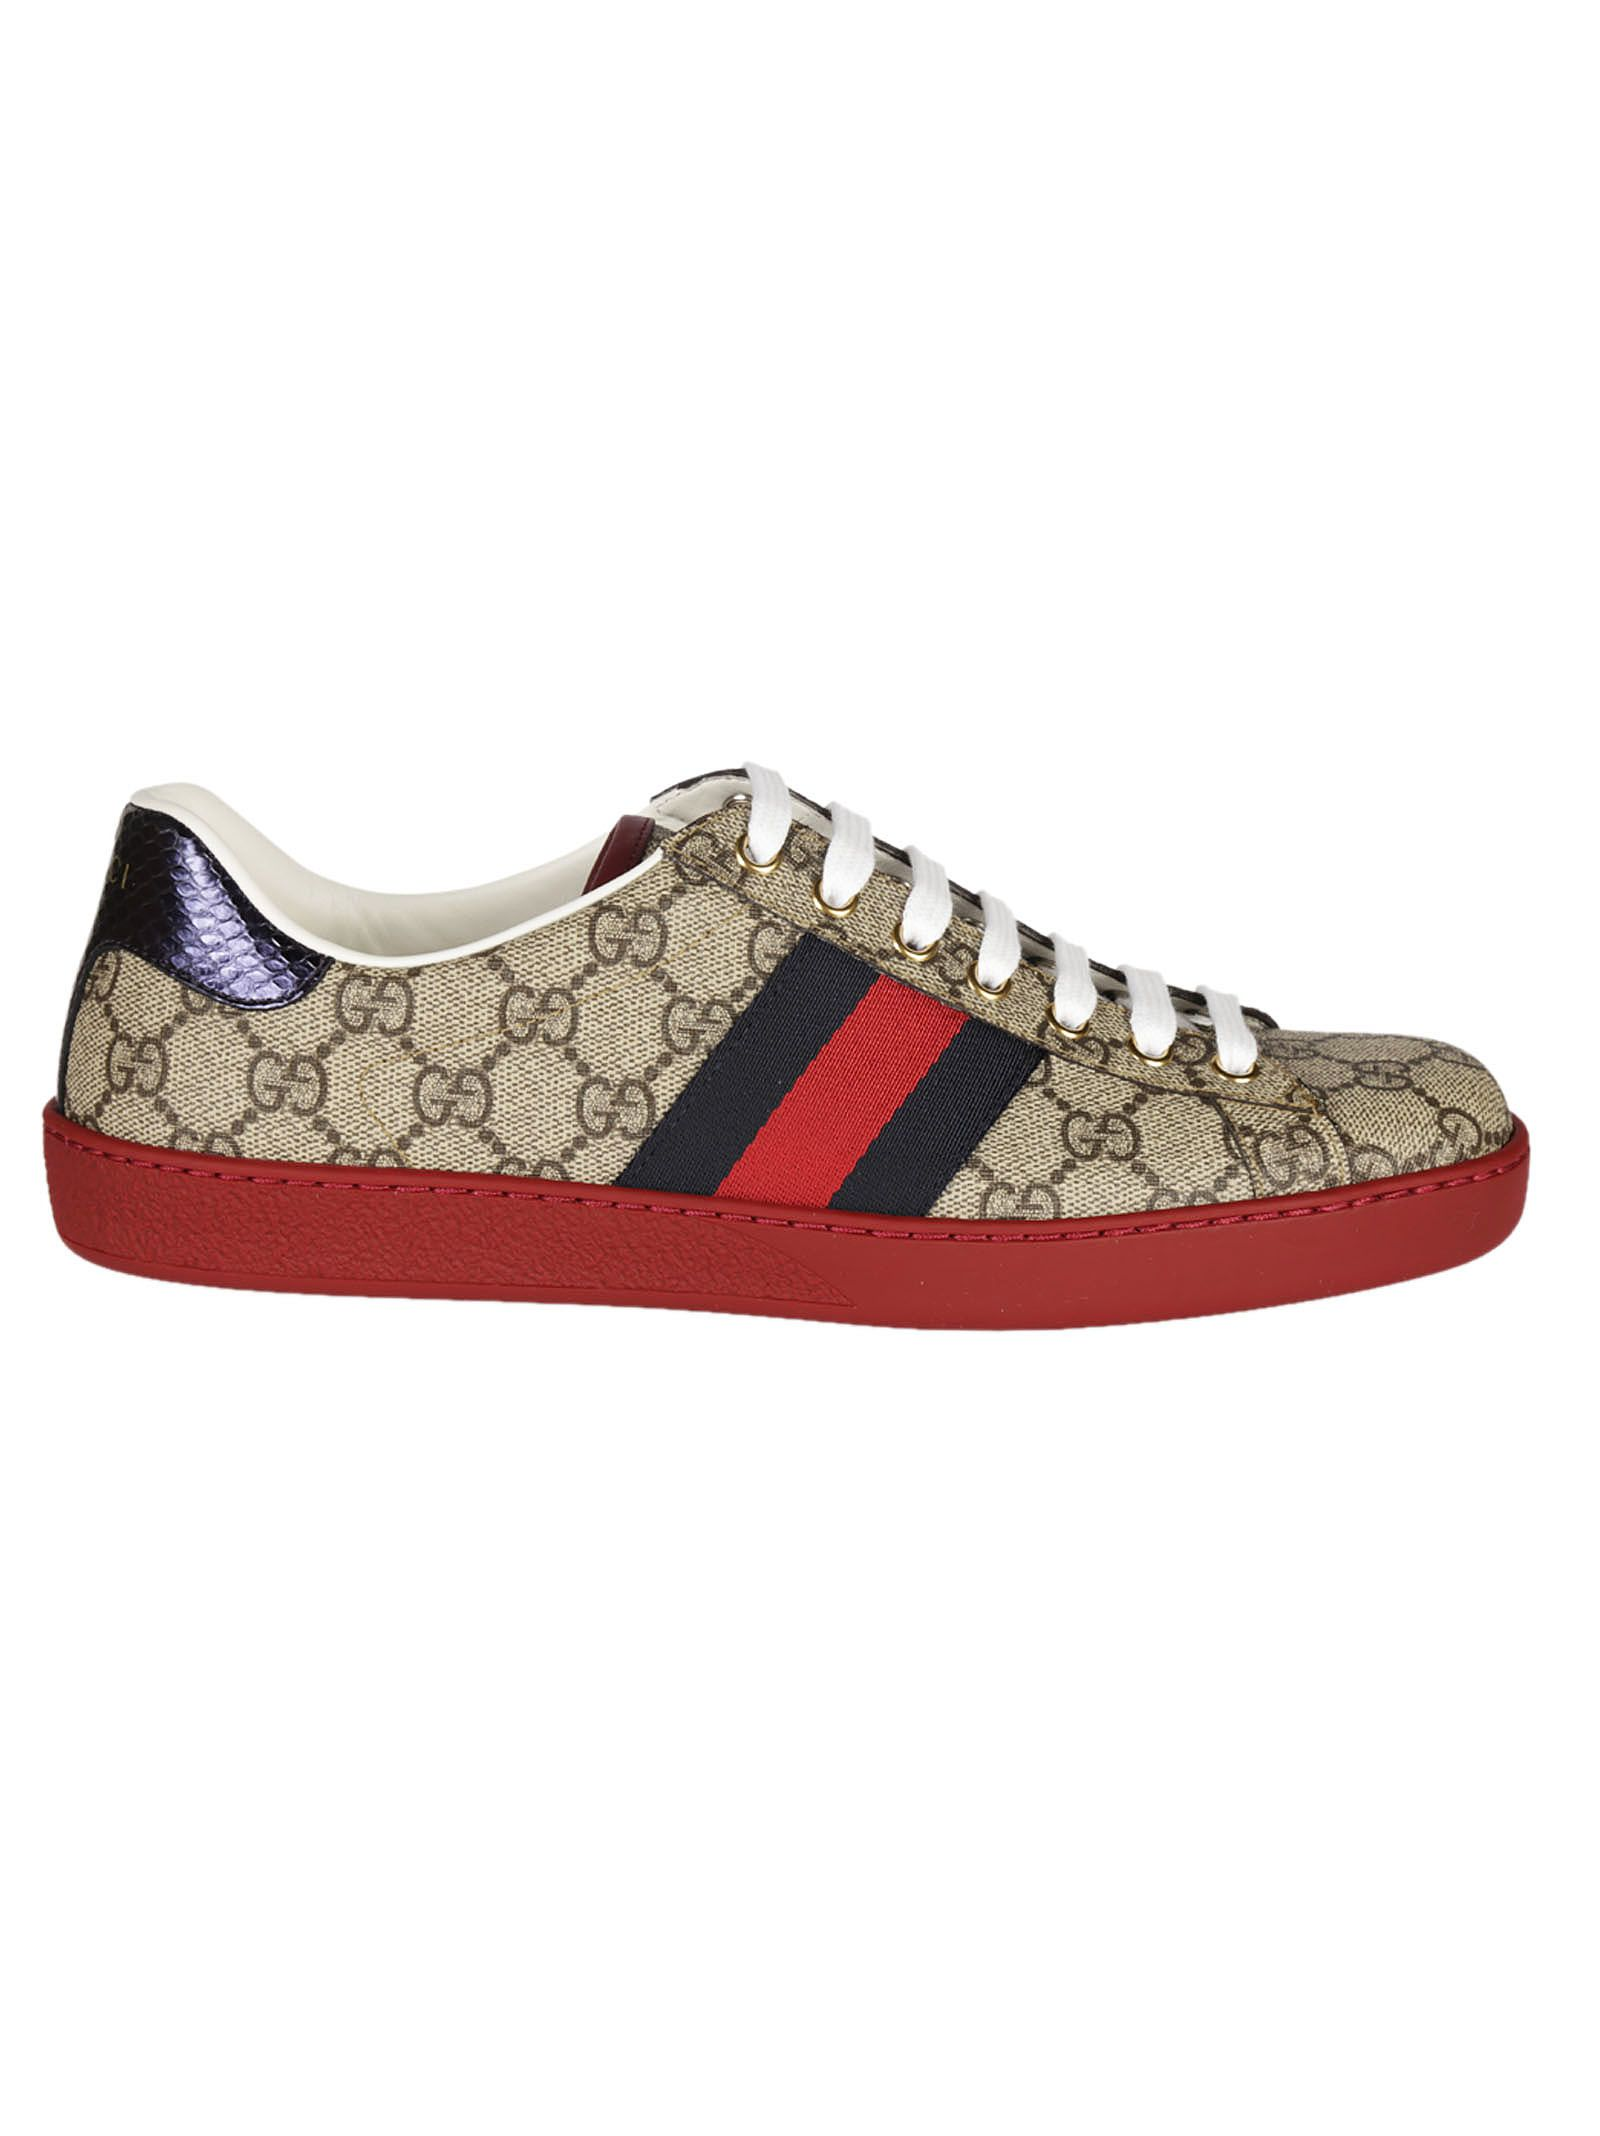 Gucci Shoes For Man On Sale